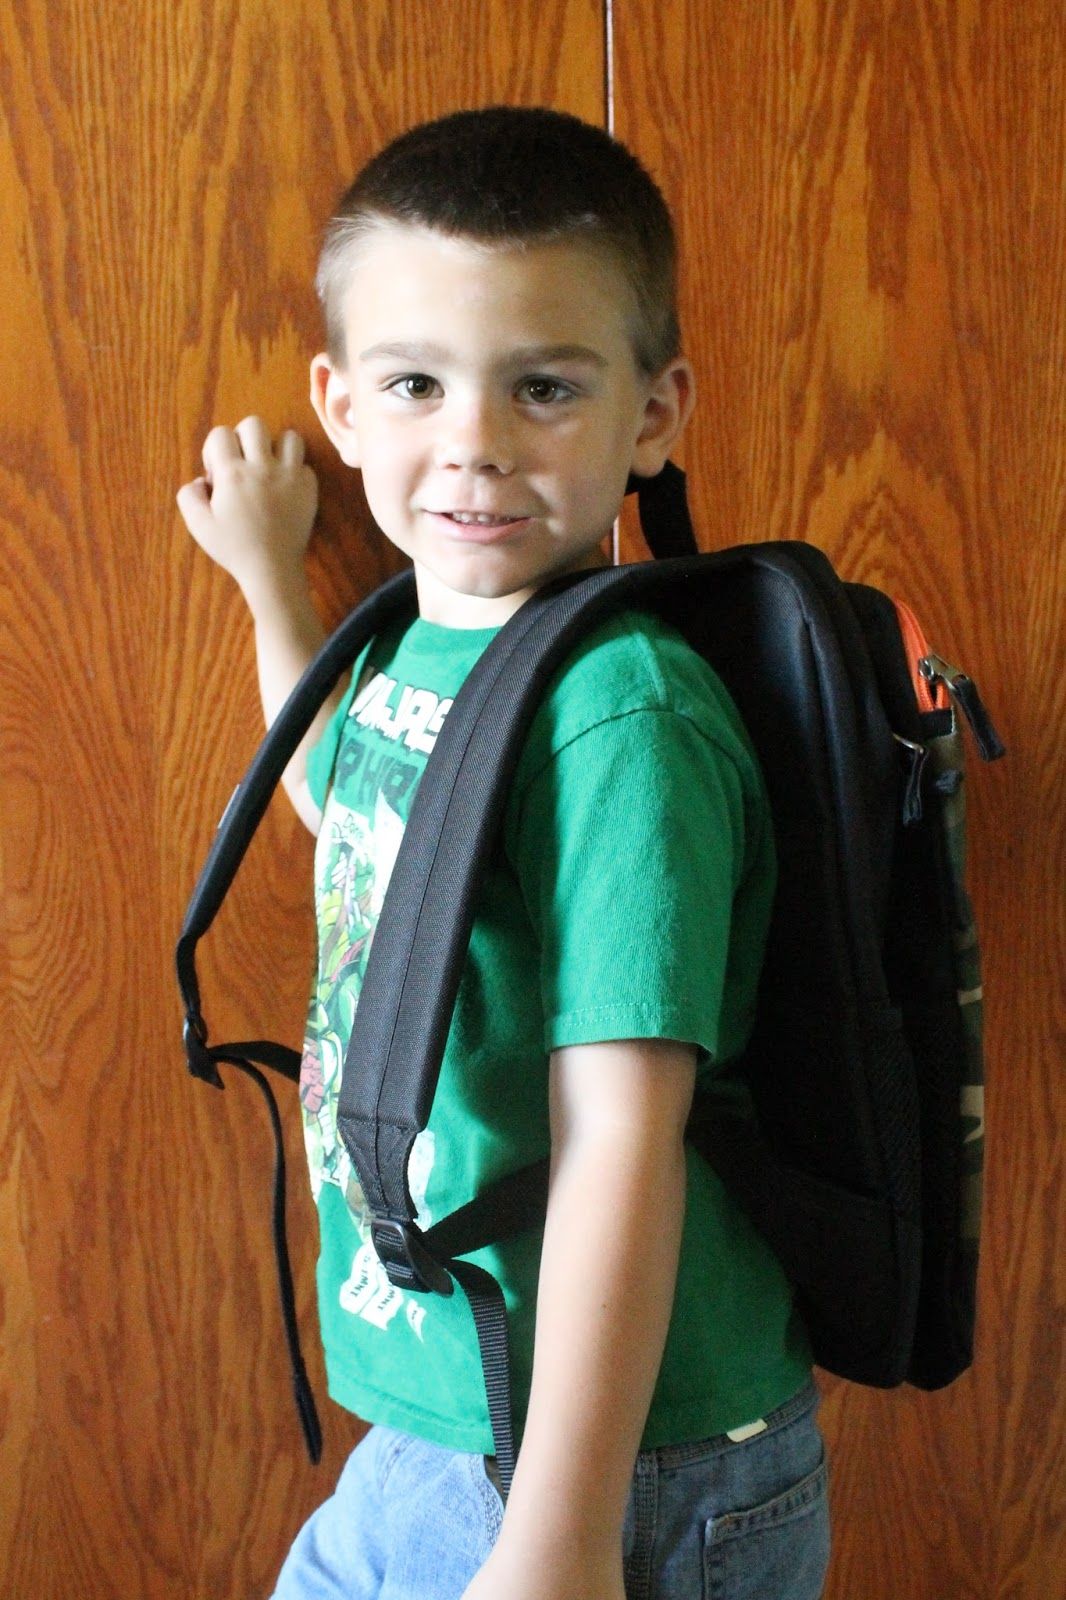 Back to School Farm Kid Style with Carhartt s new line of back packs 65581dbe5e847